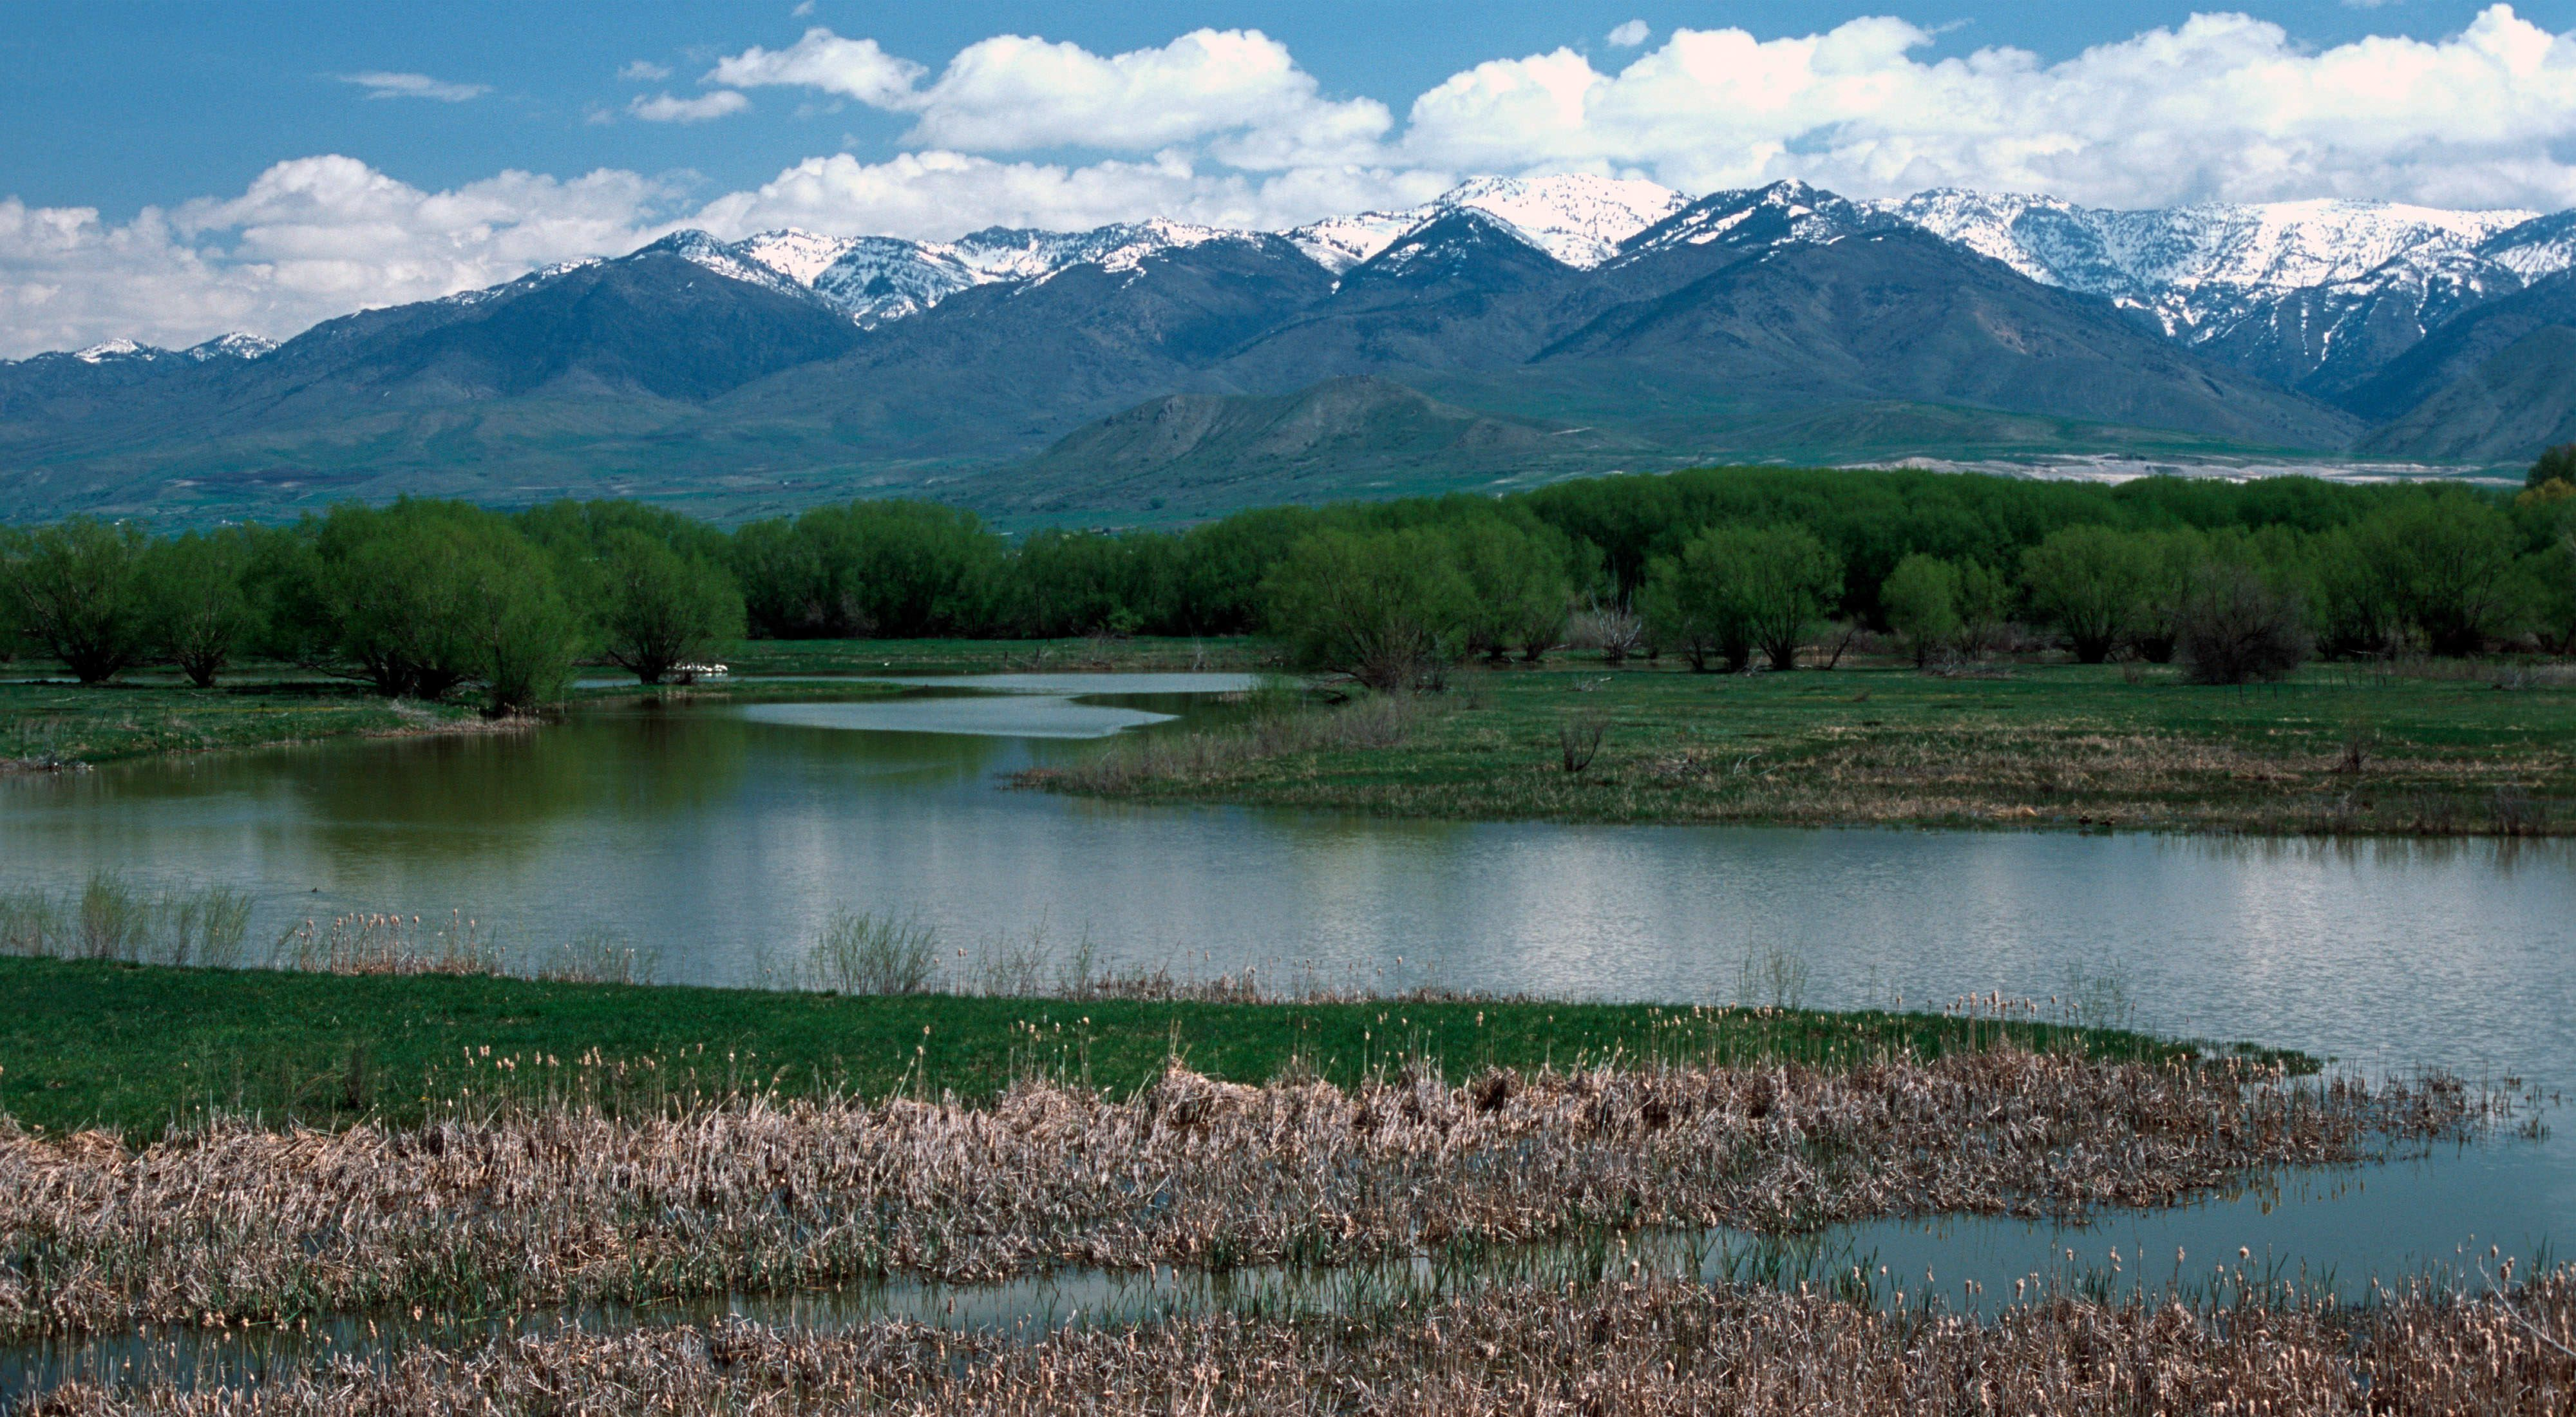 Landscape view of the Bear River and reflected mountains.